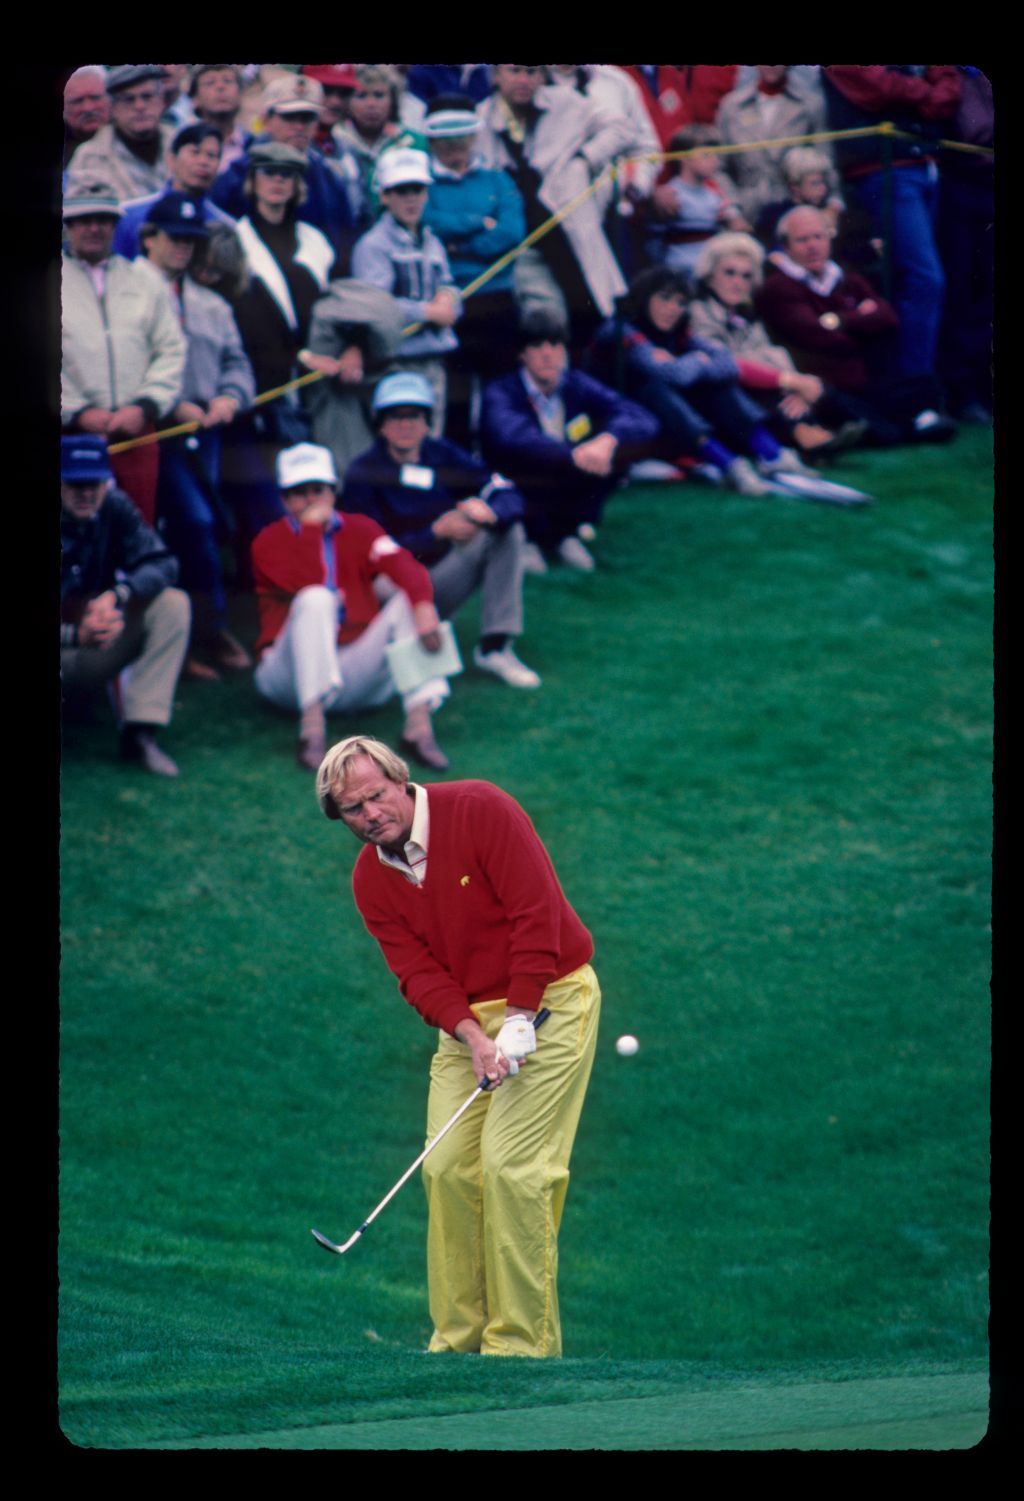 Jack Nicklaus chipping from the greenside semi during the 1984 Skins Game